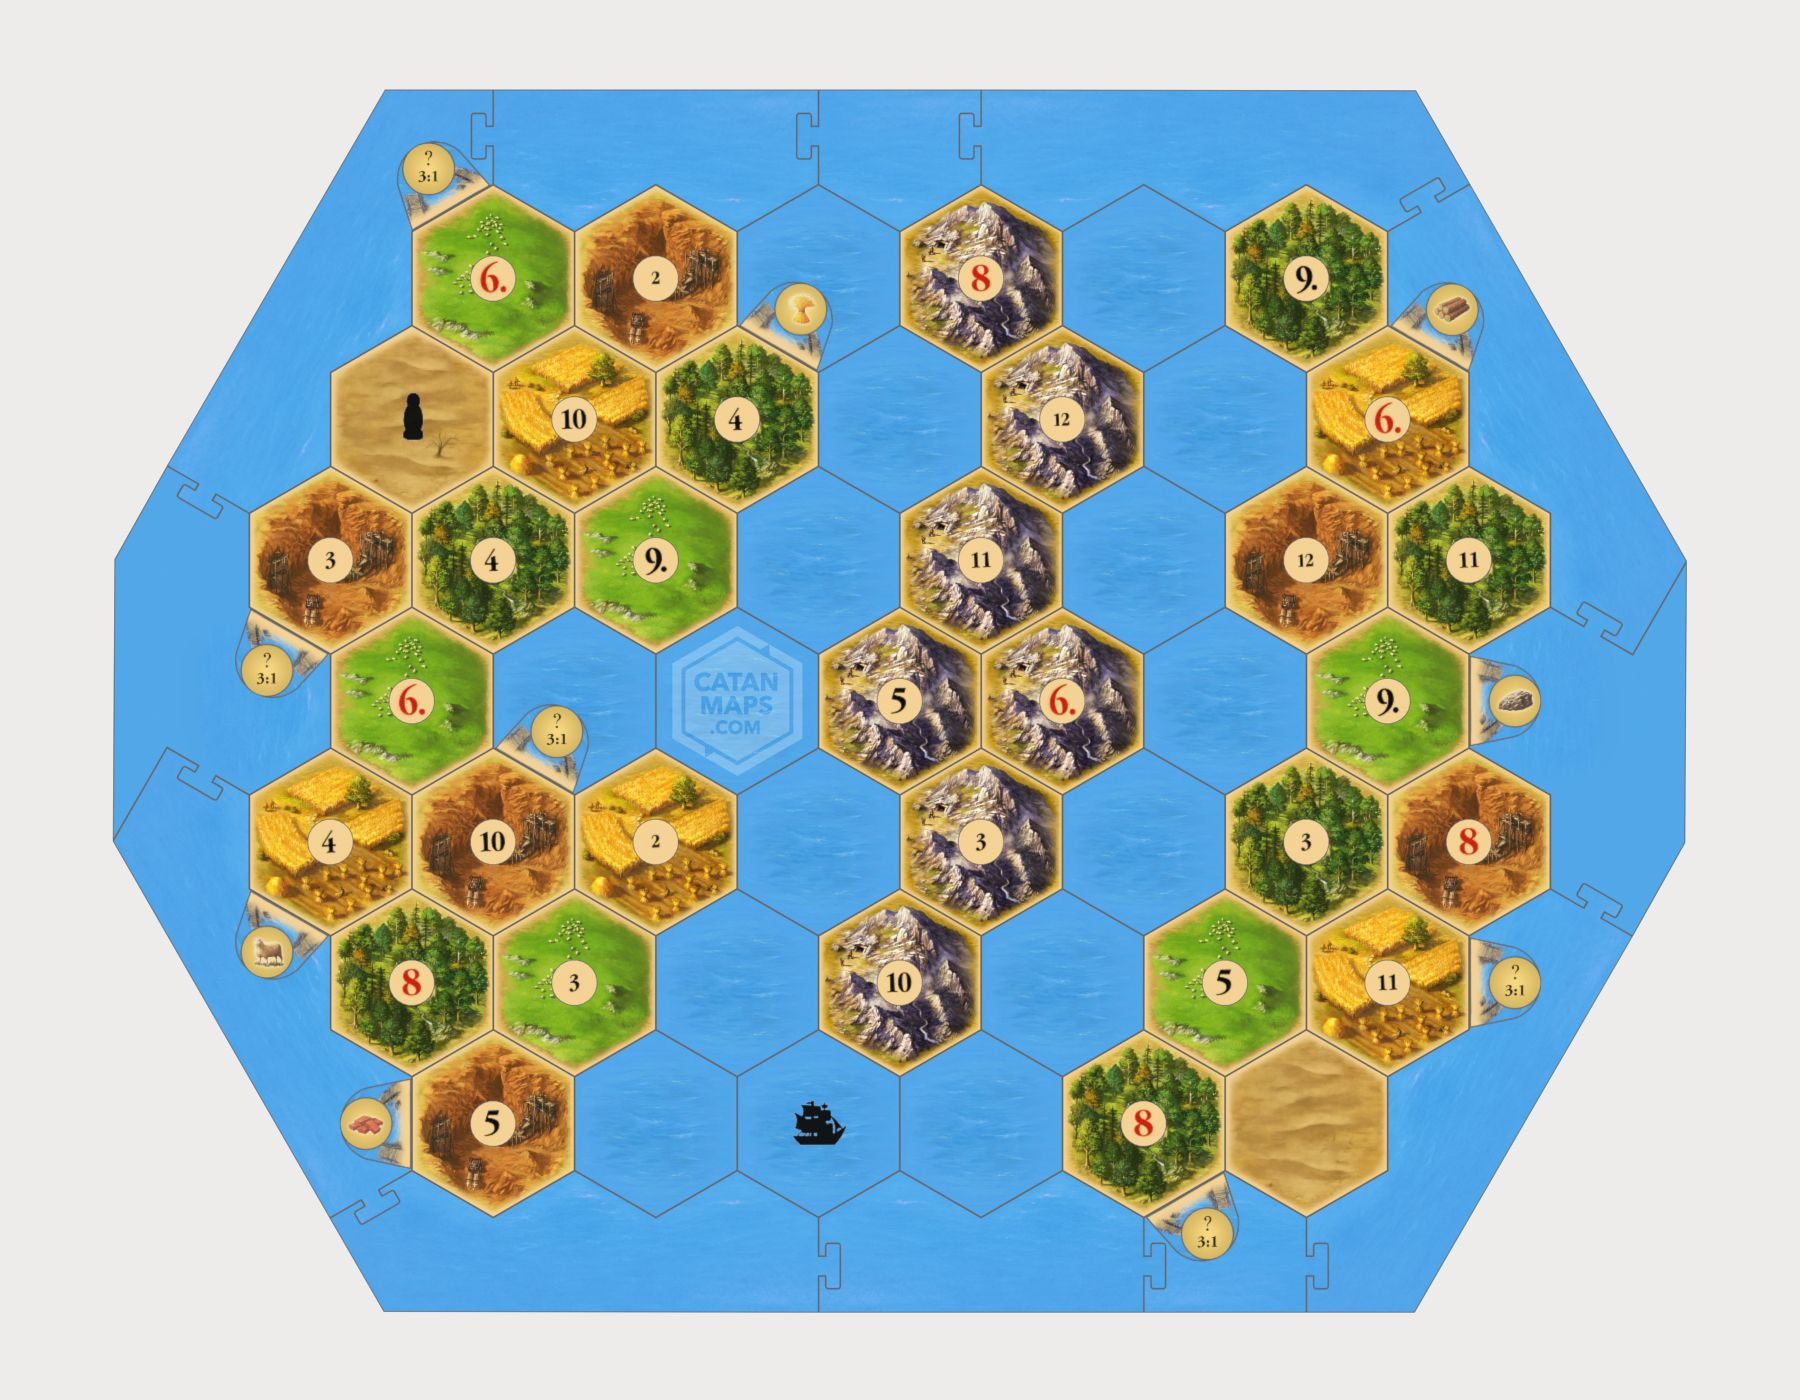 The Spine Catan, Settlers of catan, The expanse